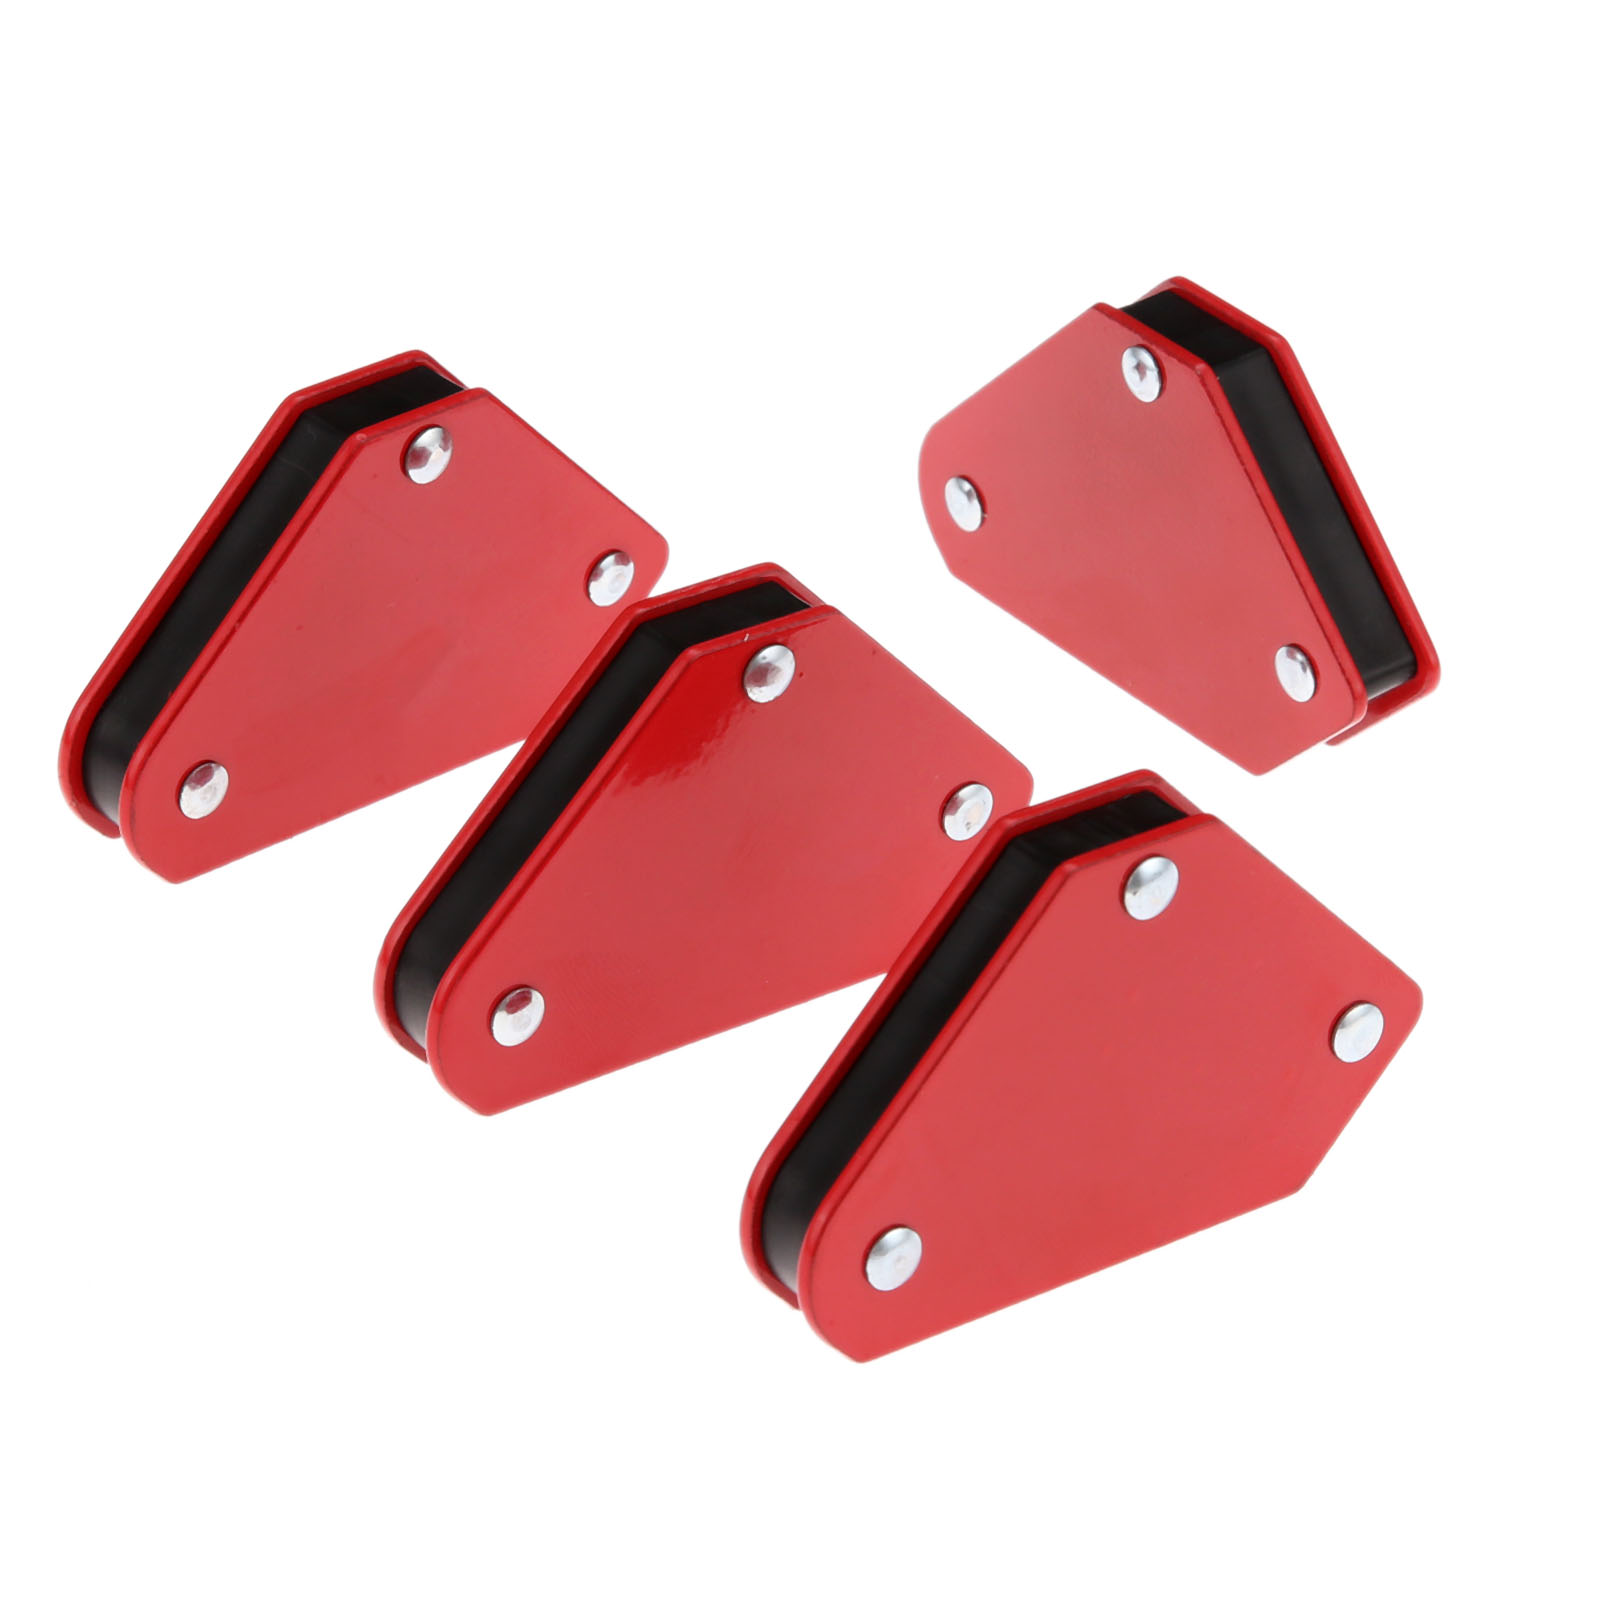 DRELD 4pcs Magnetic Welding Positioner Magnet Welding Holder Arrow Clamp 45/90/135 Degrees Clamp For Electric Welding Iron Tools